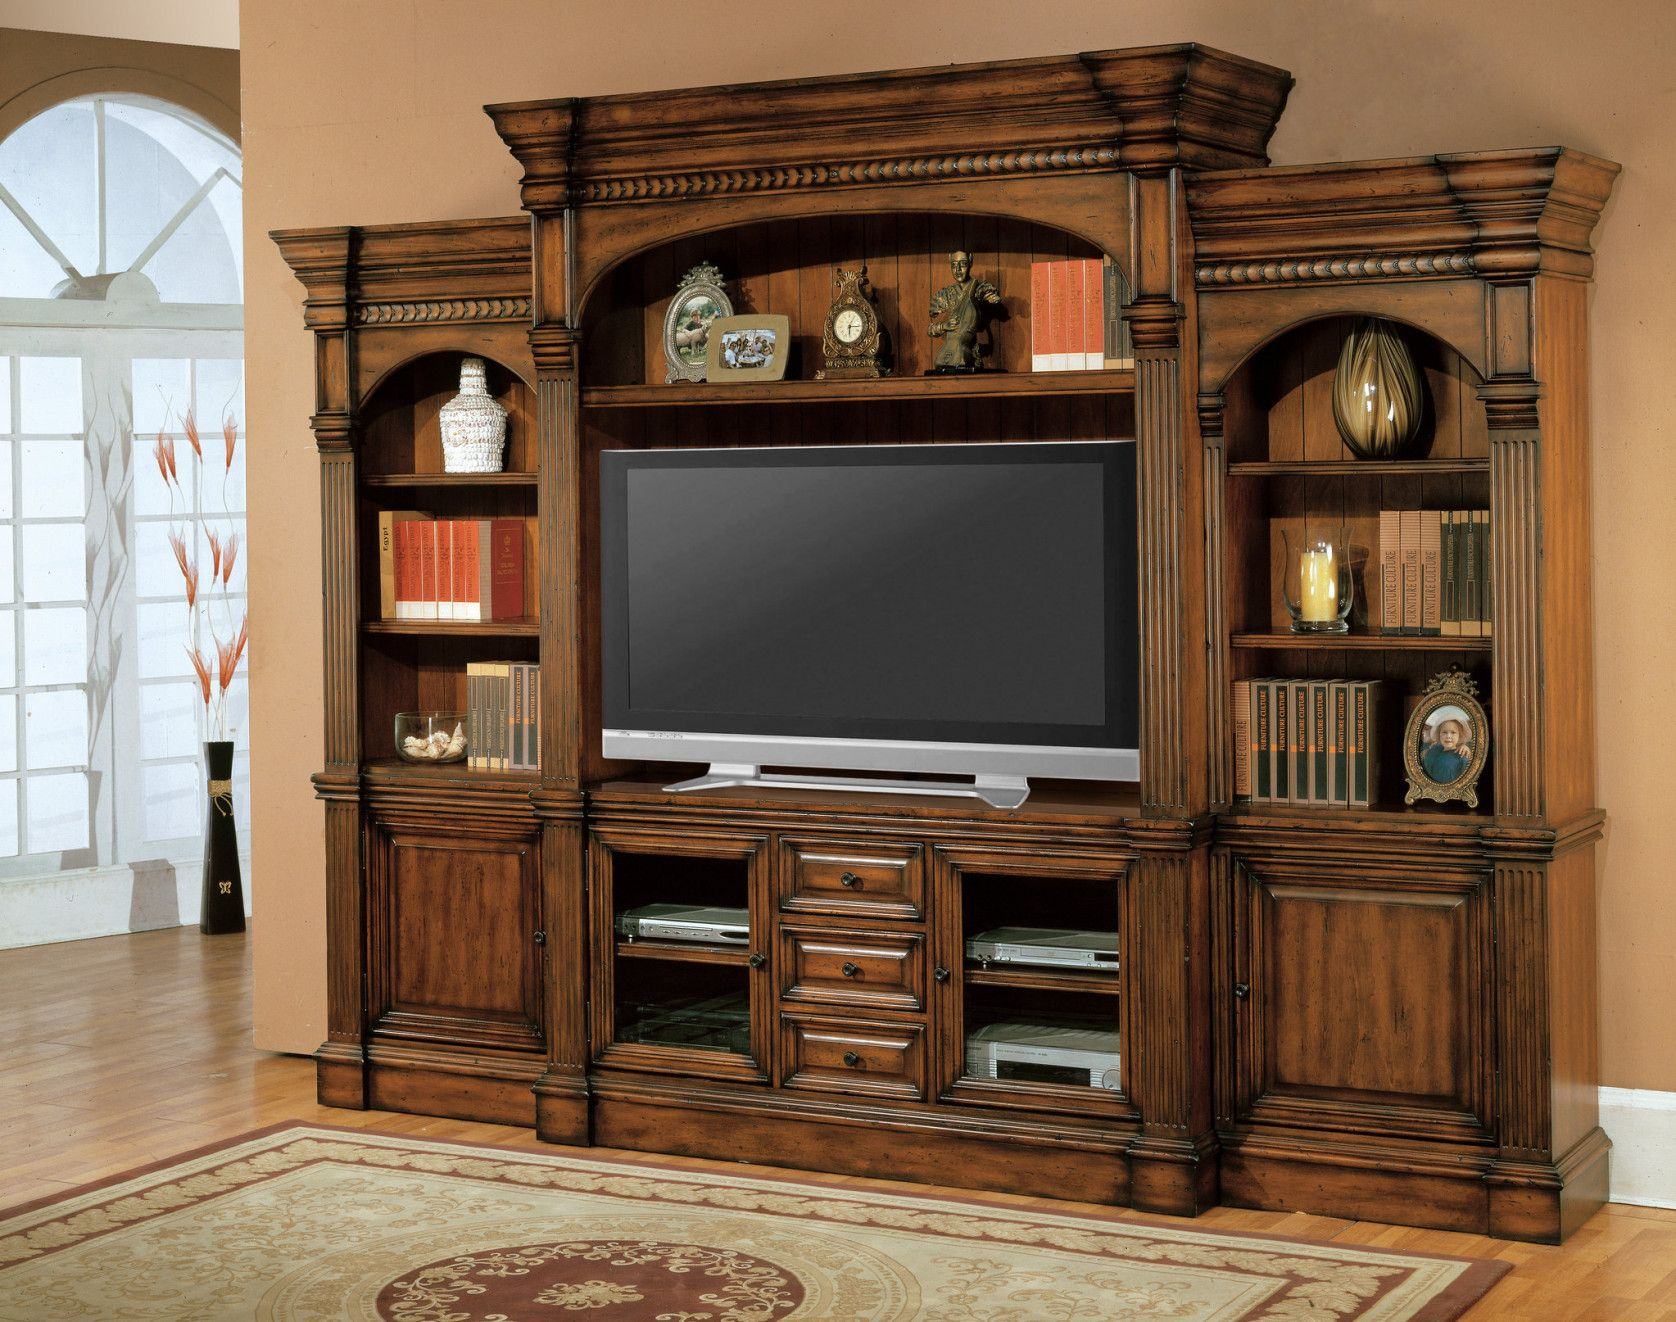 2019 Large Screen Tv Cabinets Kitchen Countertops Ideas Check More At Http